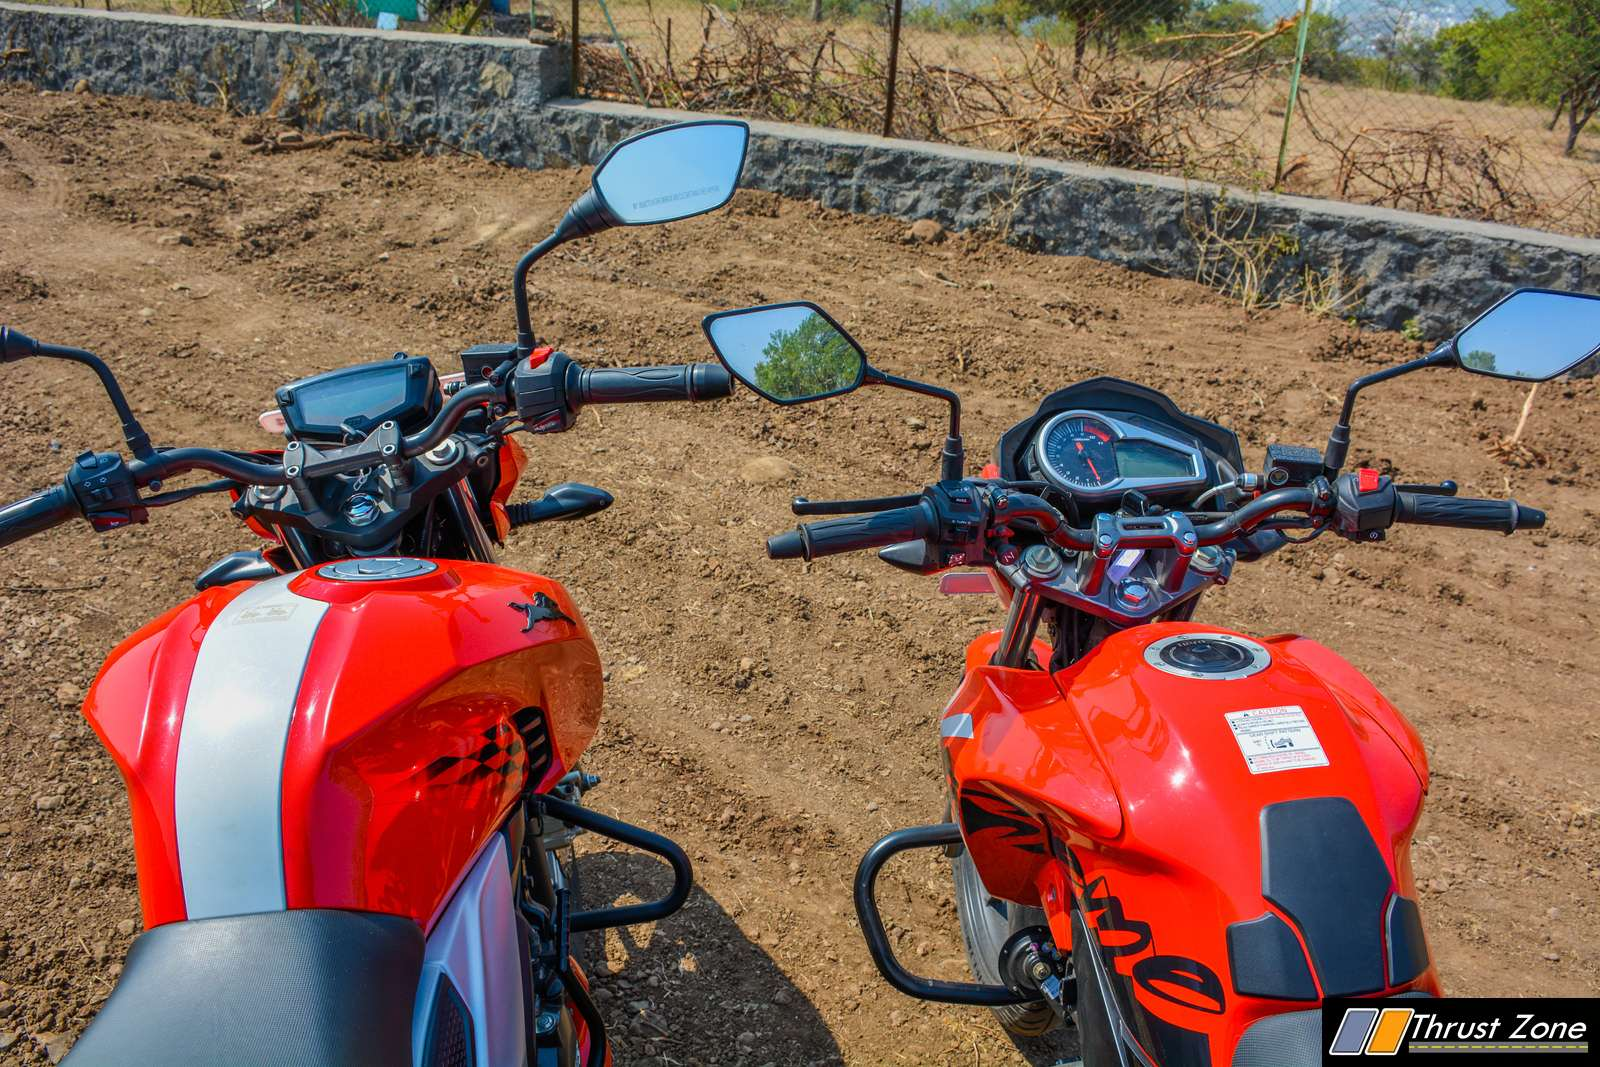 Hero-Xtreme-200R-vs-Apache-RTR-160-Comparison-Review-4